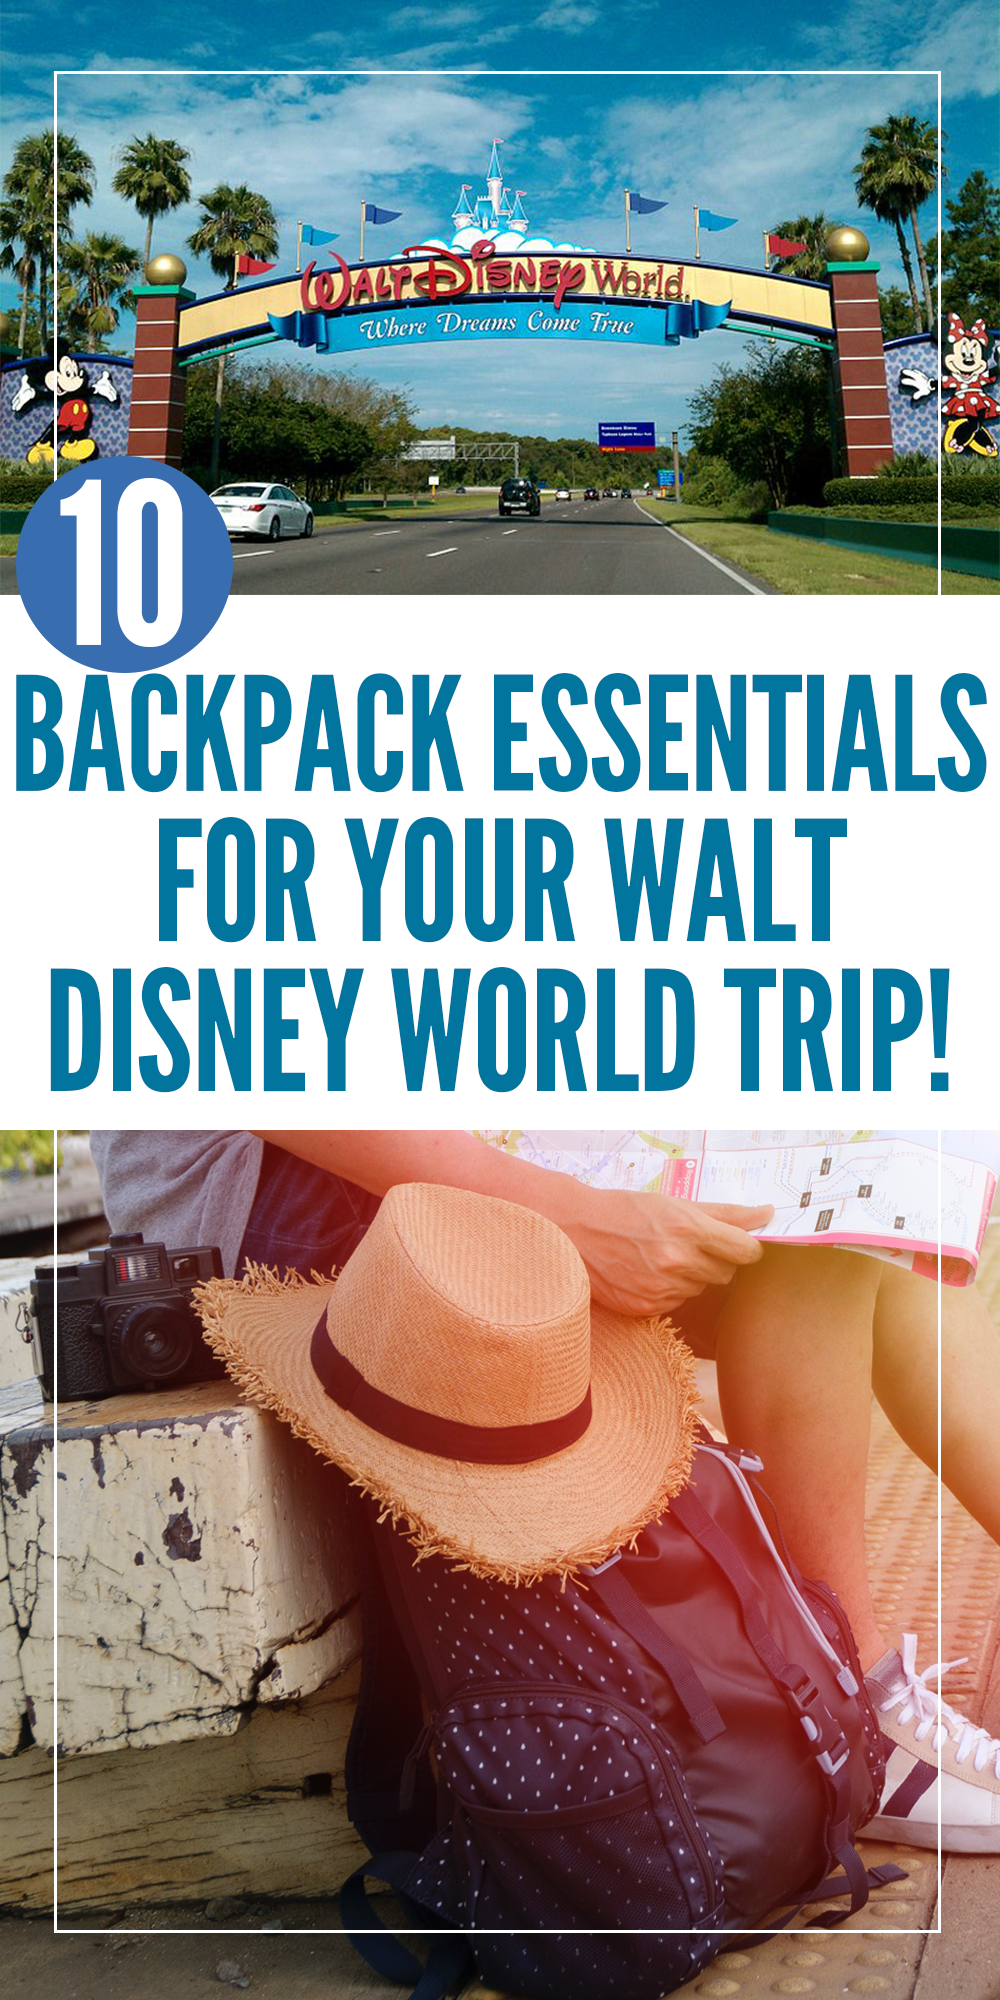 9b42adf1be9 Need some advice on what to pack in your backpack for Walt Disney World  We